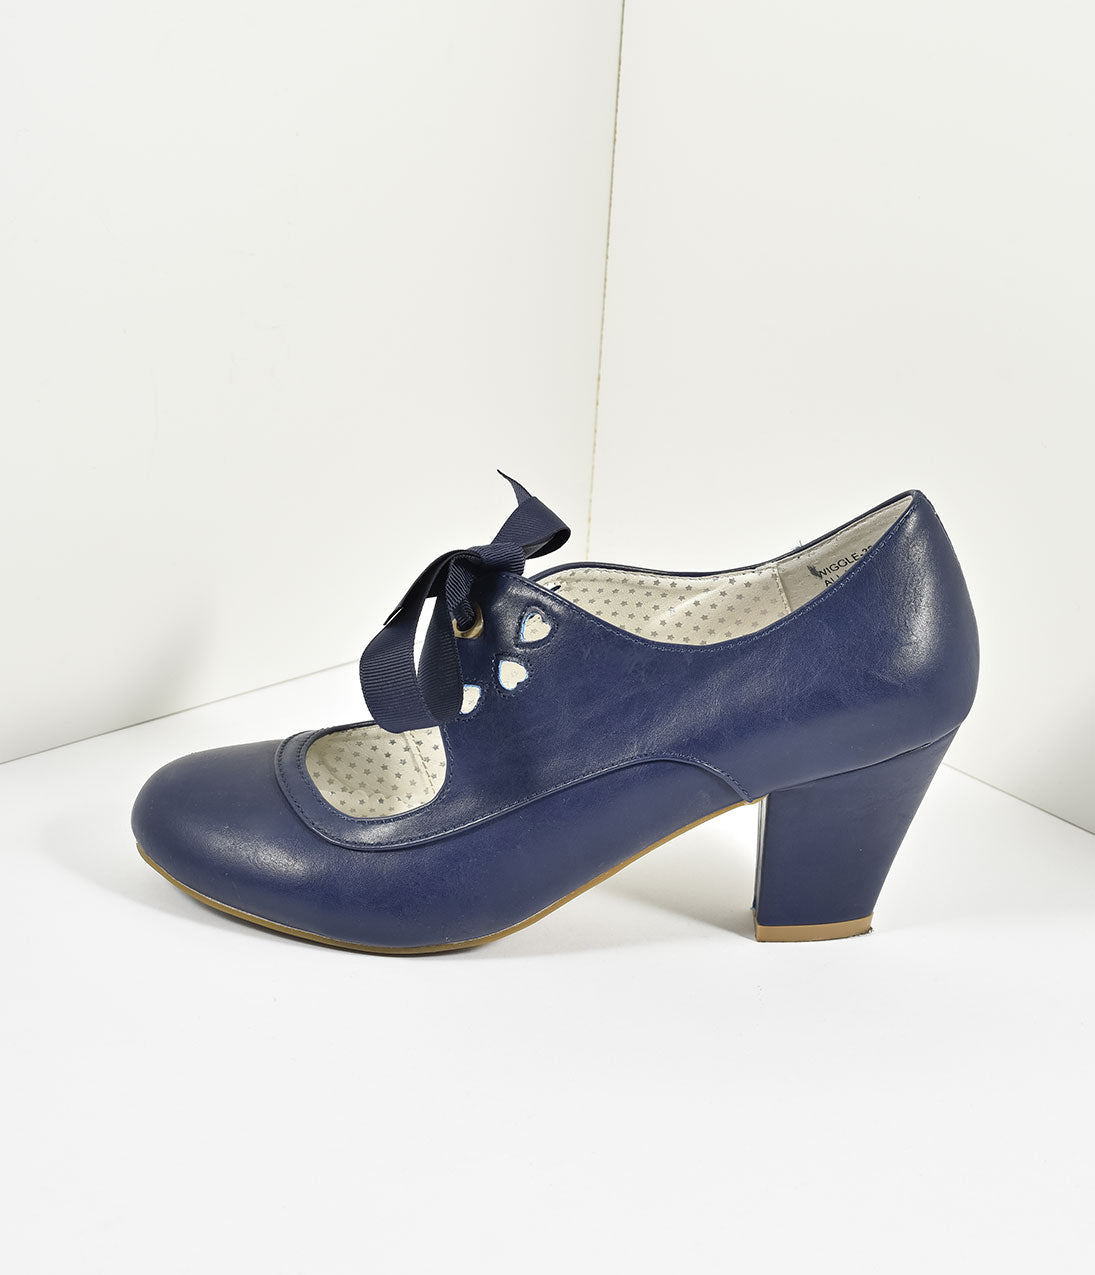 1950s Style Shoes | Heels, Flats, Saddle Shoes Vintage Style Navy Blue Leatherette Mary Jane Bow Wiggle Heels $58.00 AT vintagedancer.com